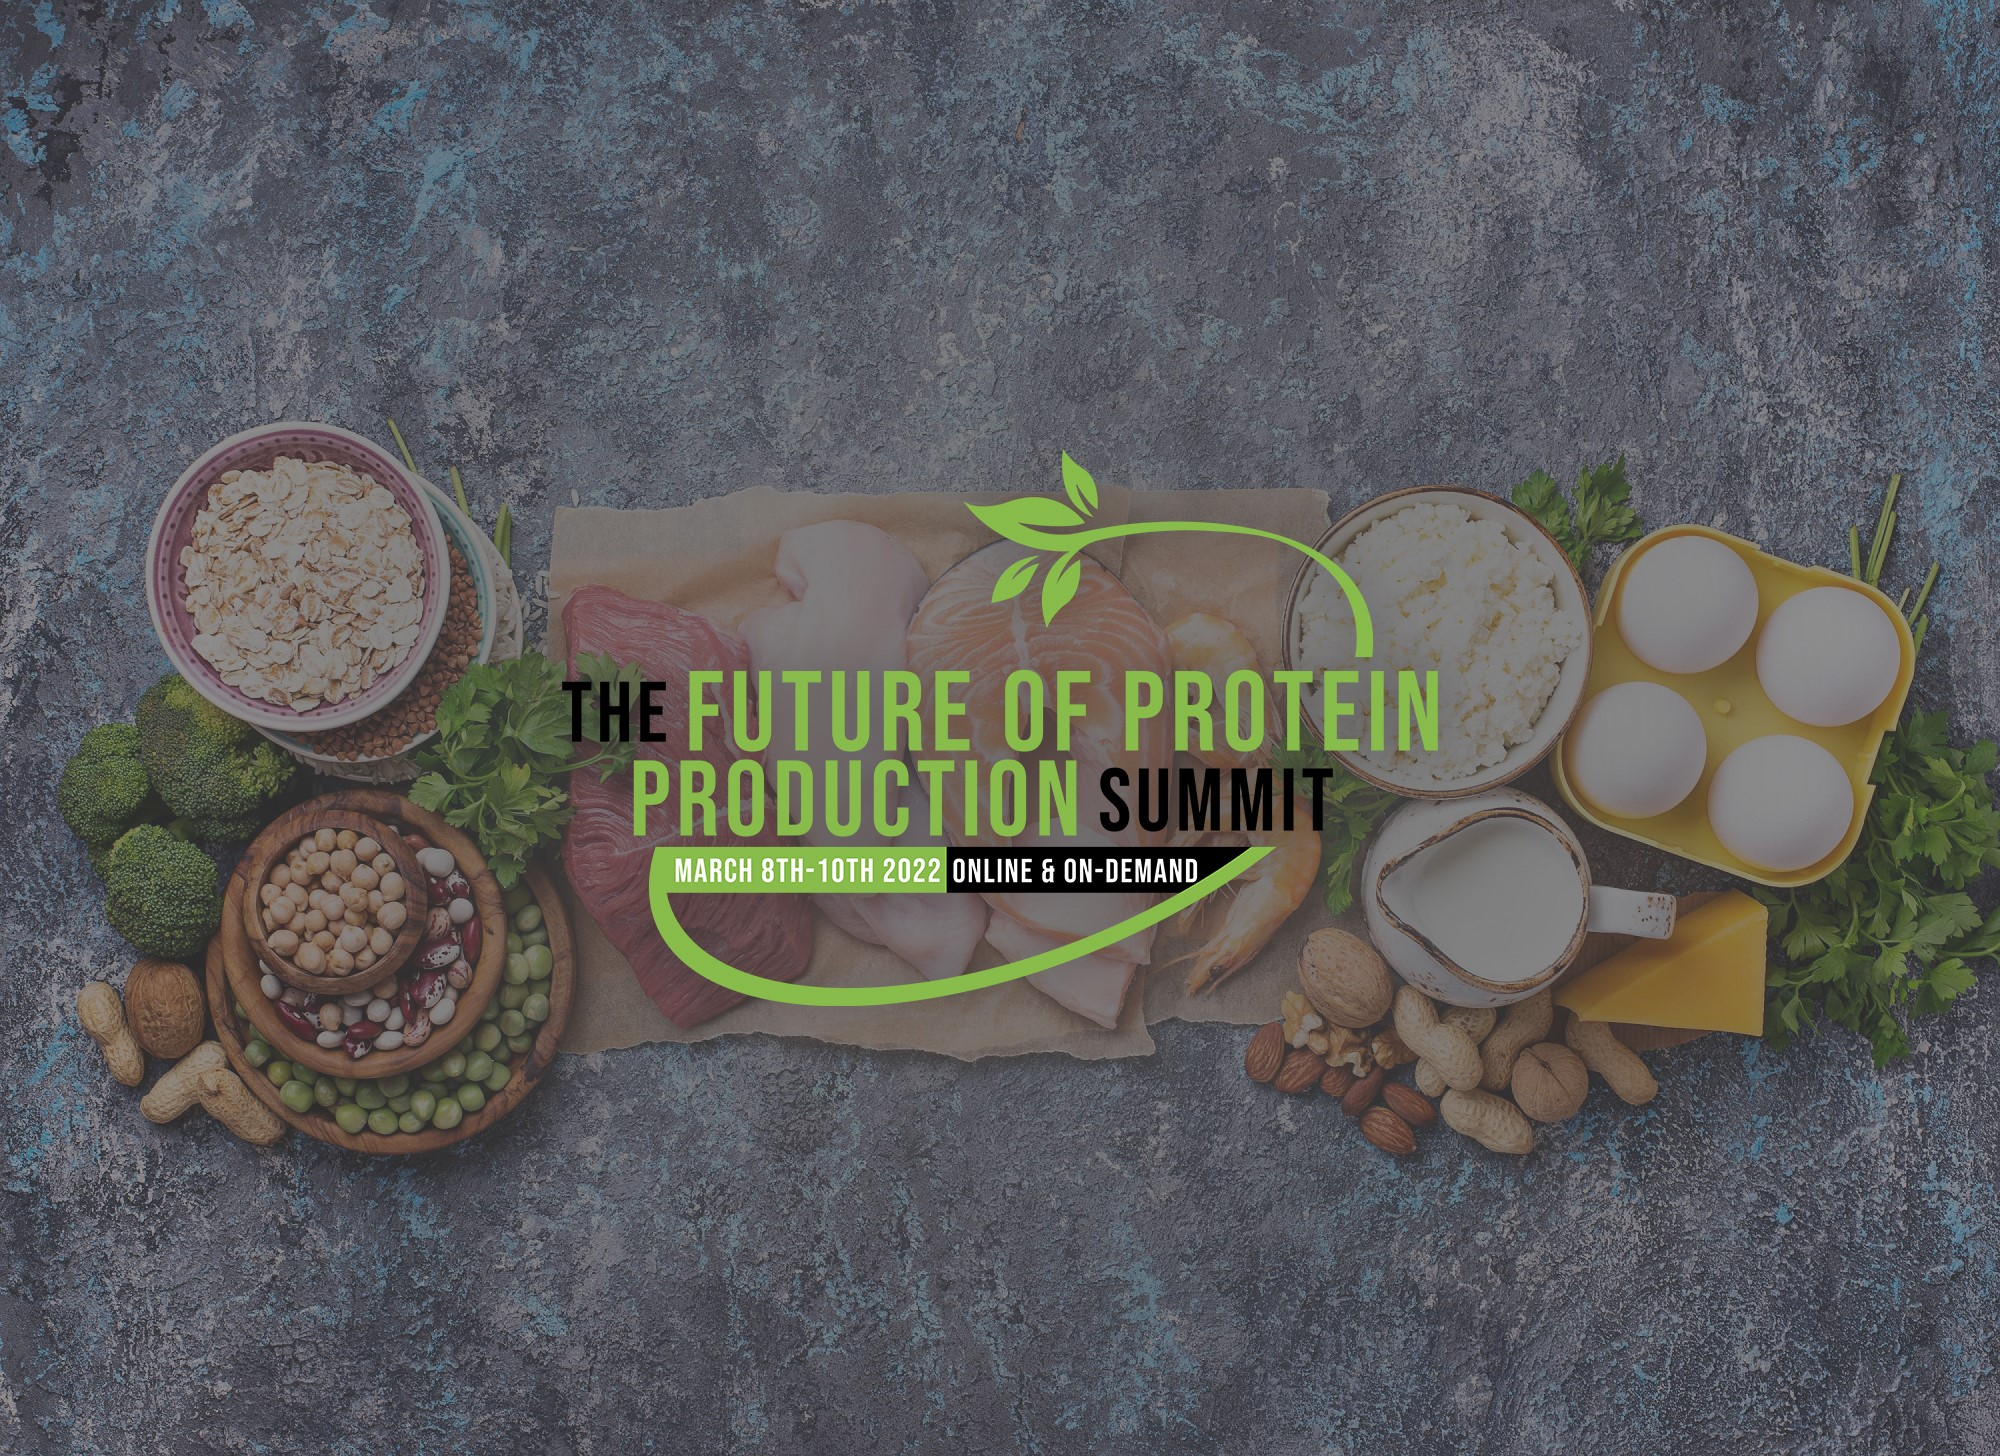 The Future of Protein Production Launches 2022 Event – To be held online on the 8th-11th March 2022